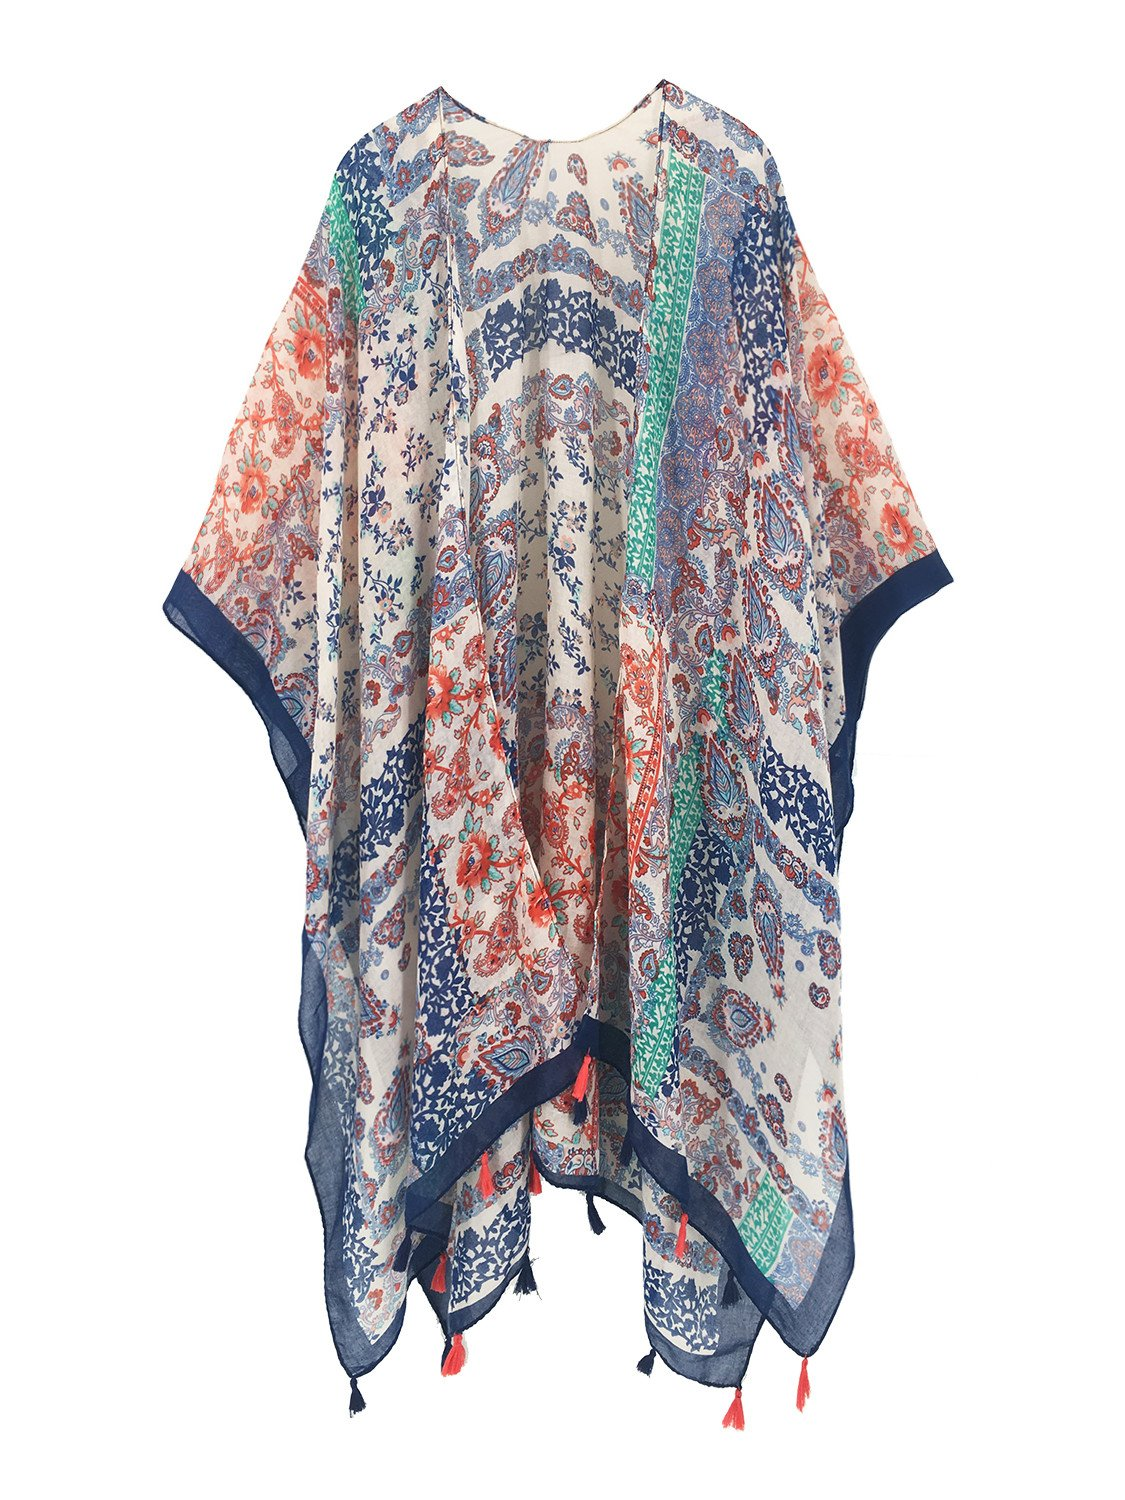 Moss Rose Women's Beach Cover up Swimsuit Kimono Cardigan with Bohemian Floral Print (Color 13)